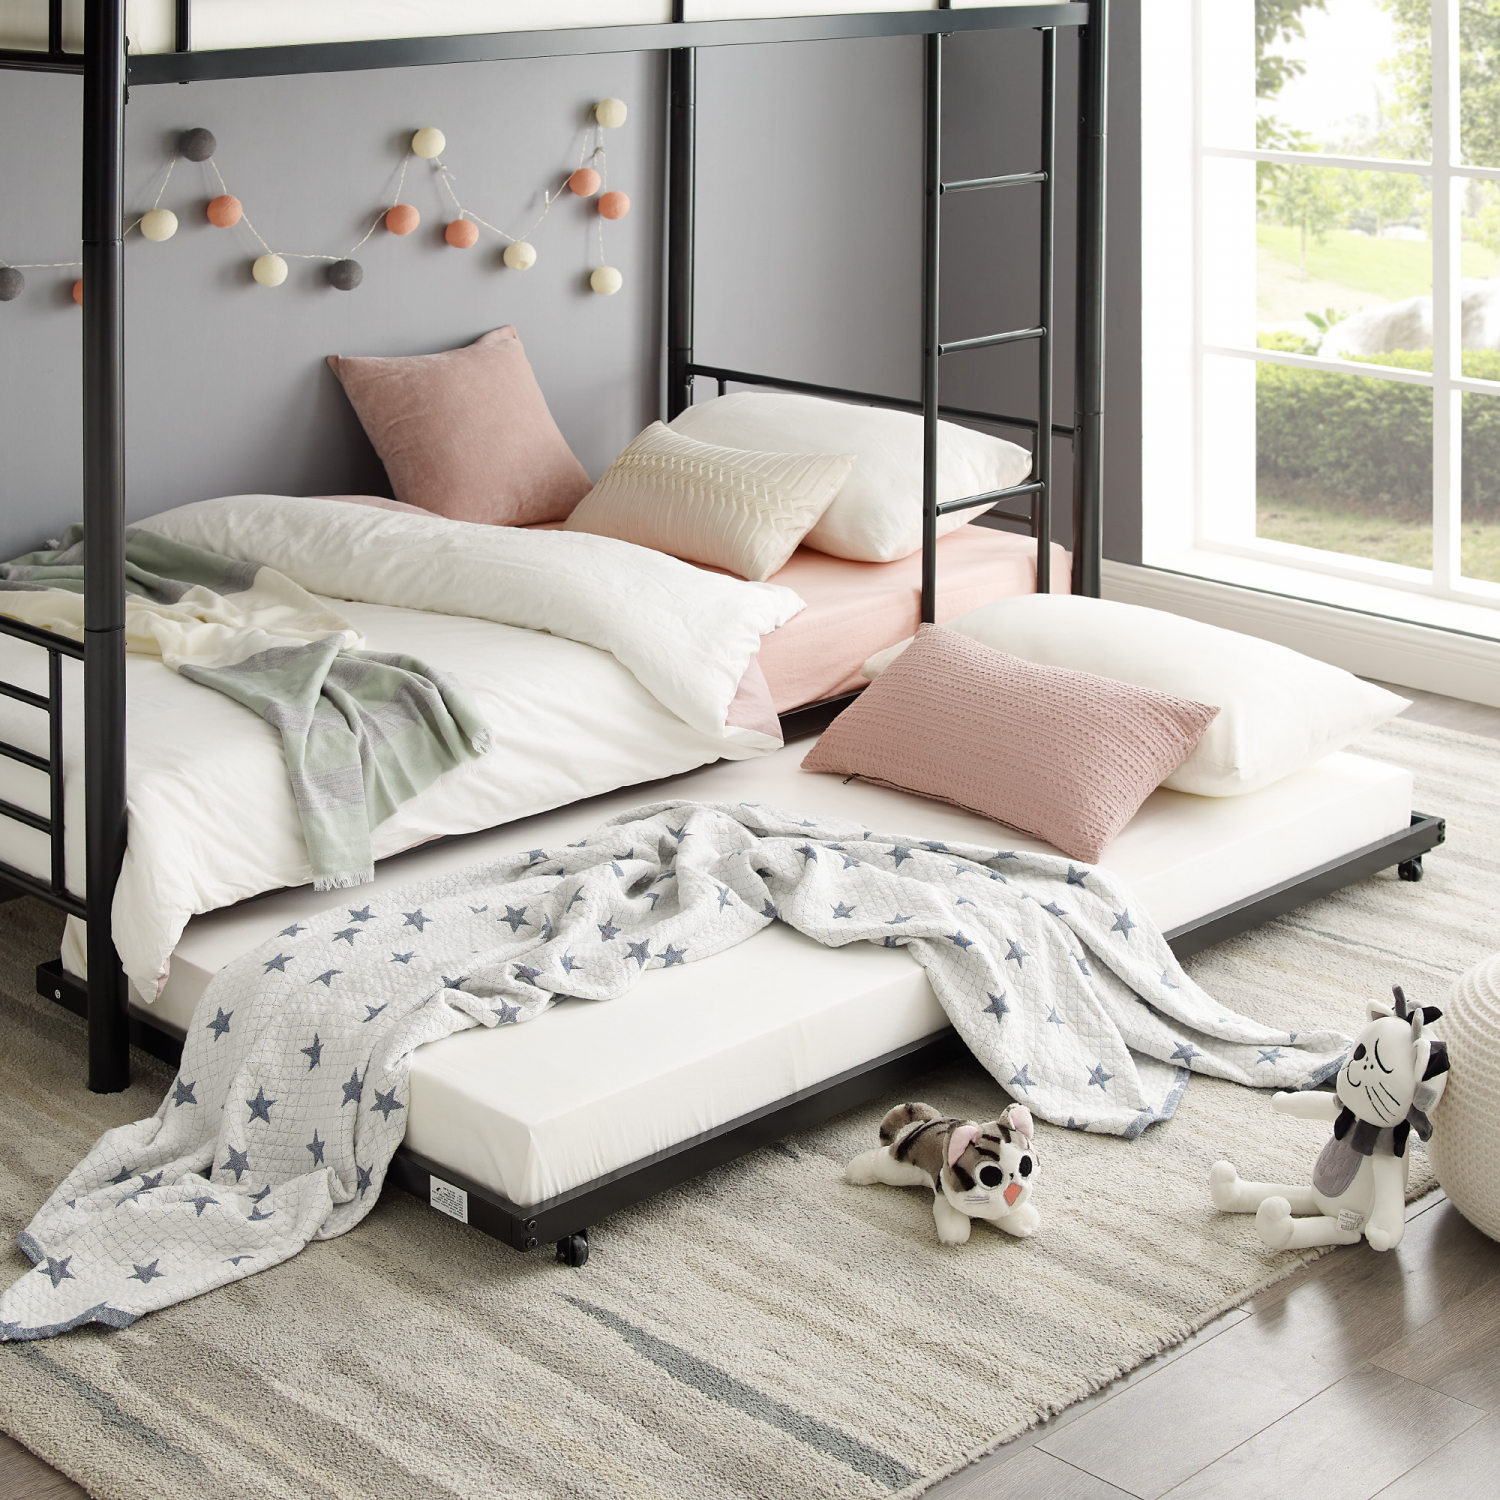 Image of: Bunk Beds Kids Black Metal Twin Bed Roll Out Trundle Frame Storage Save Space Home Garden Home Garden Furniture